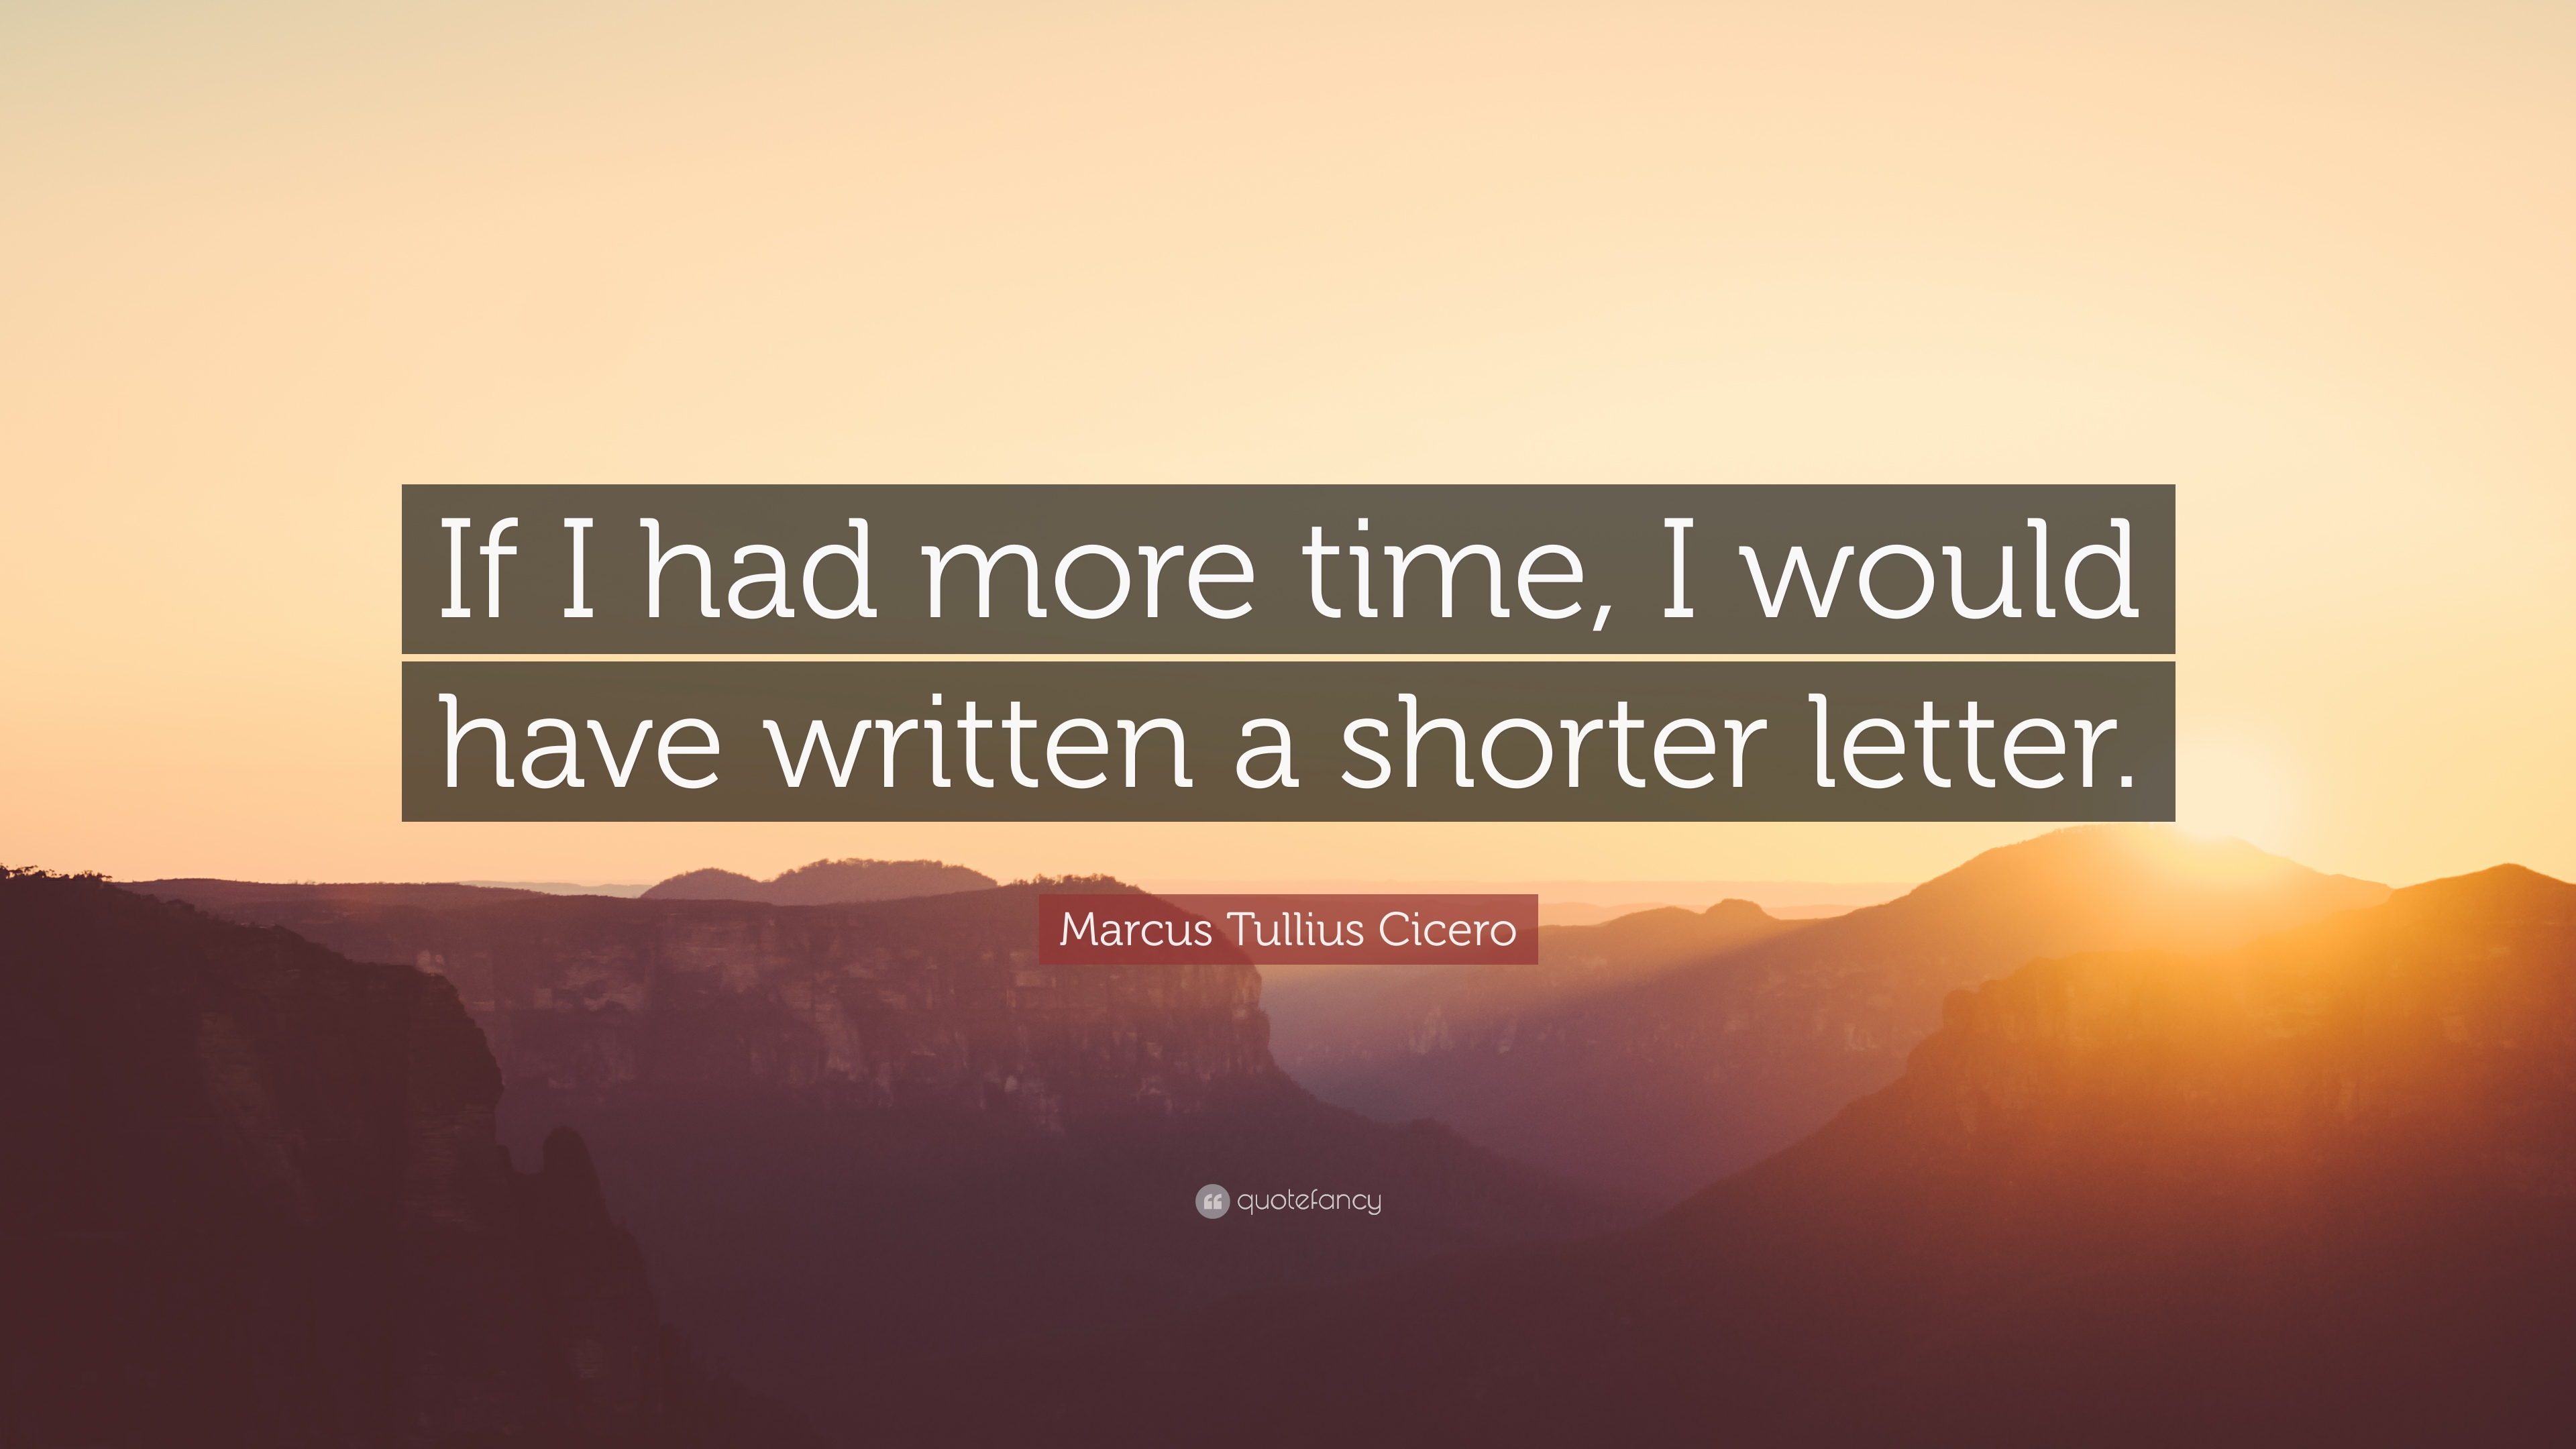 i would have written a shorter letter tullius cicero quote if i had more time i would 22526